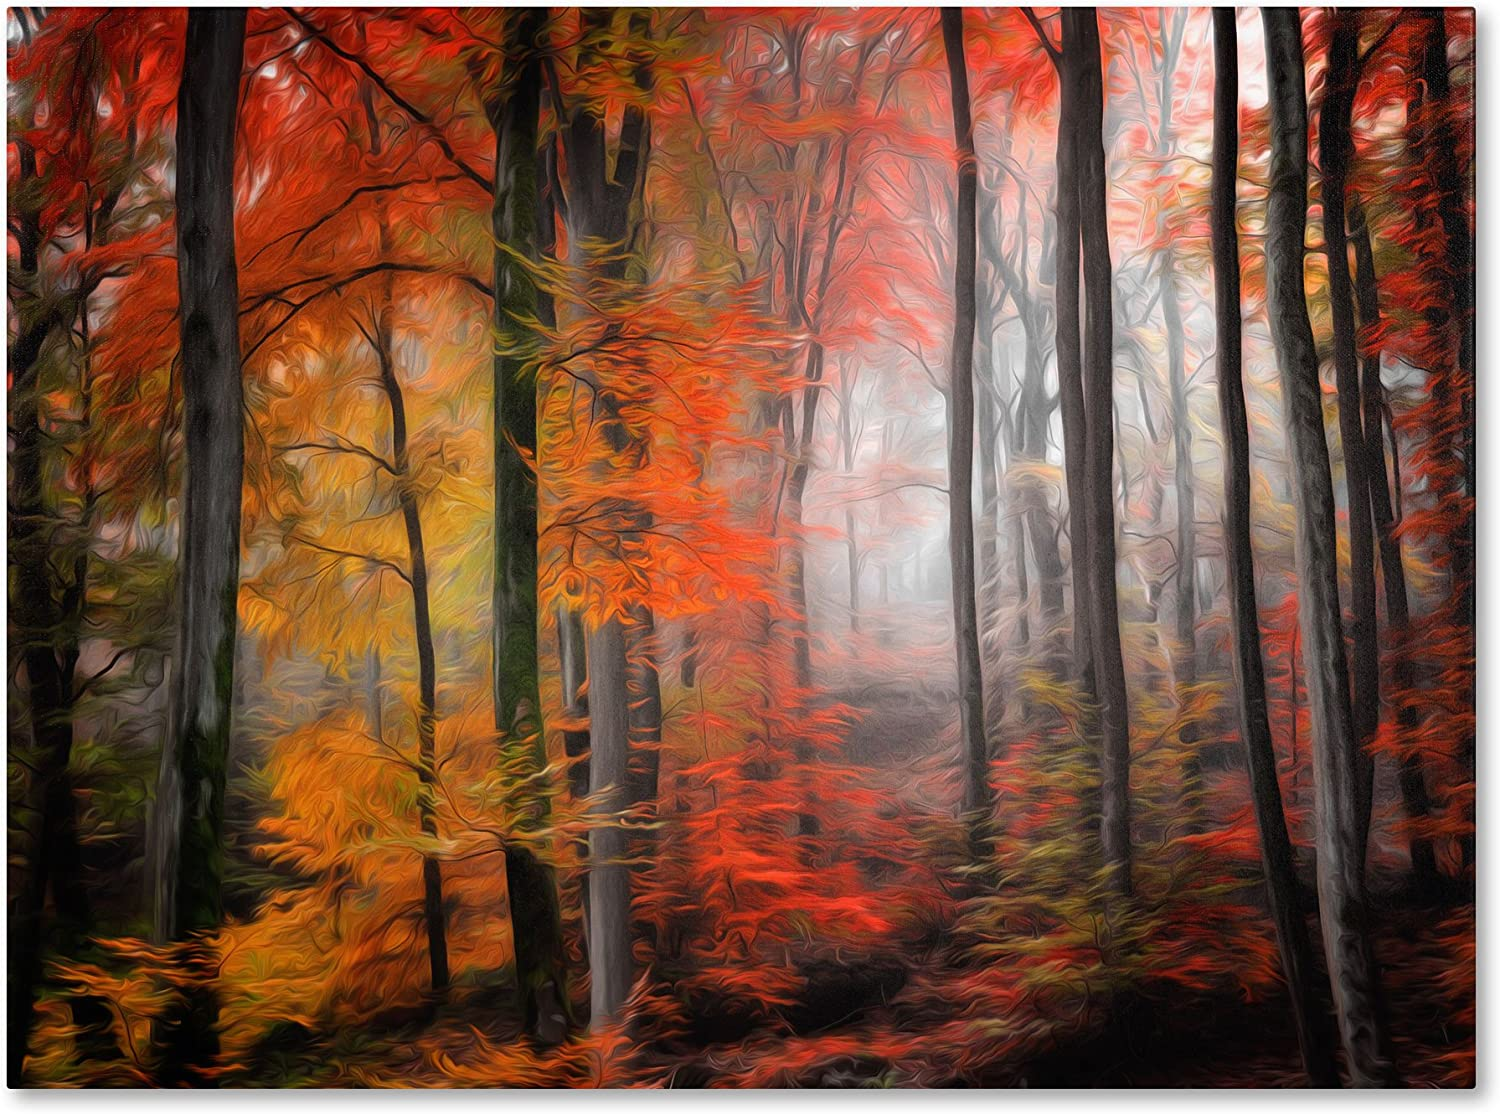 Wildly Red Artwork By Philippe Sainte Laudy 30 By 47 Inch Canvas Wall Art Posters Prints